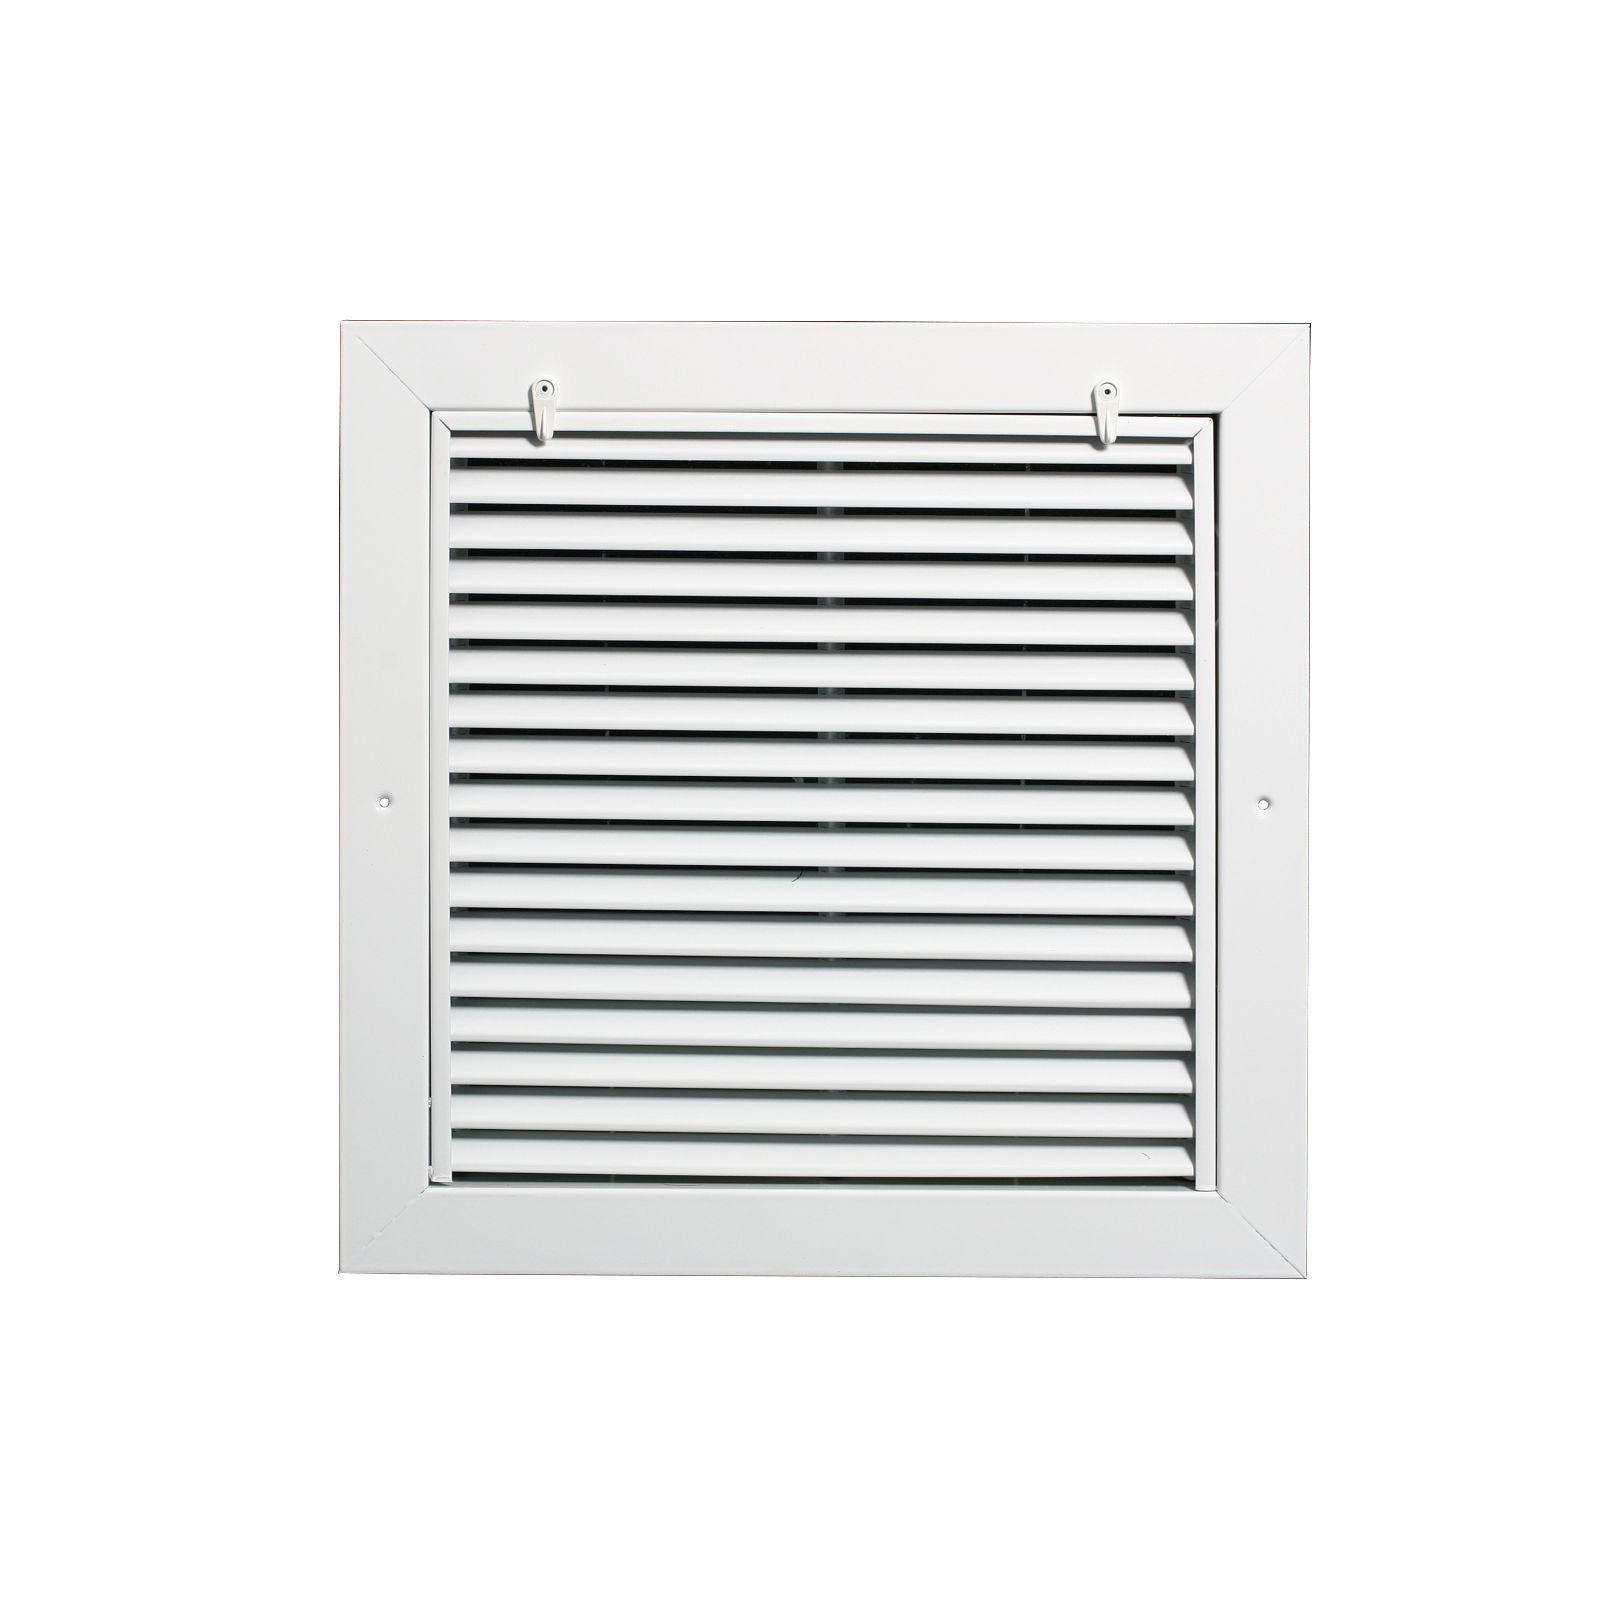 "Grille Tech RAFGS1616 - Aluminum Return Air Filter Grille, Grille Size 16"" X 16"" White"